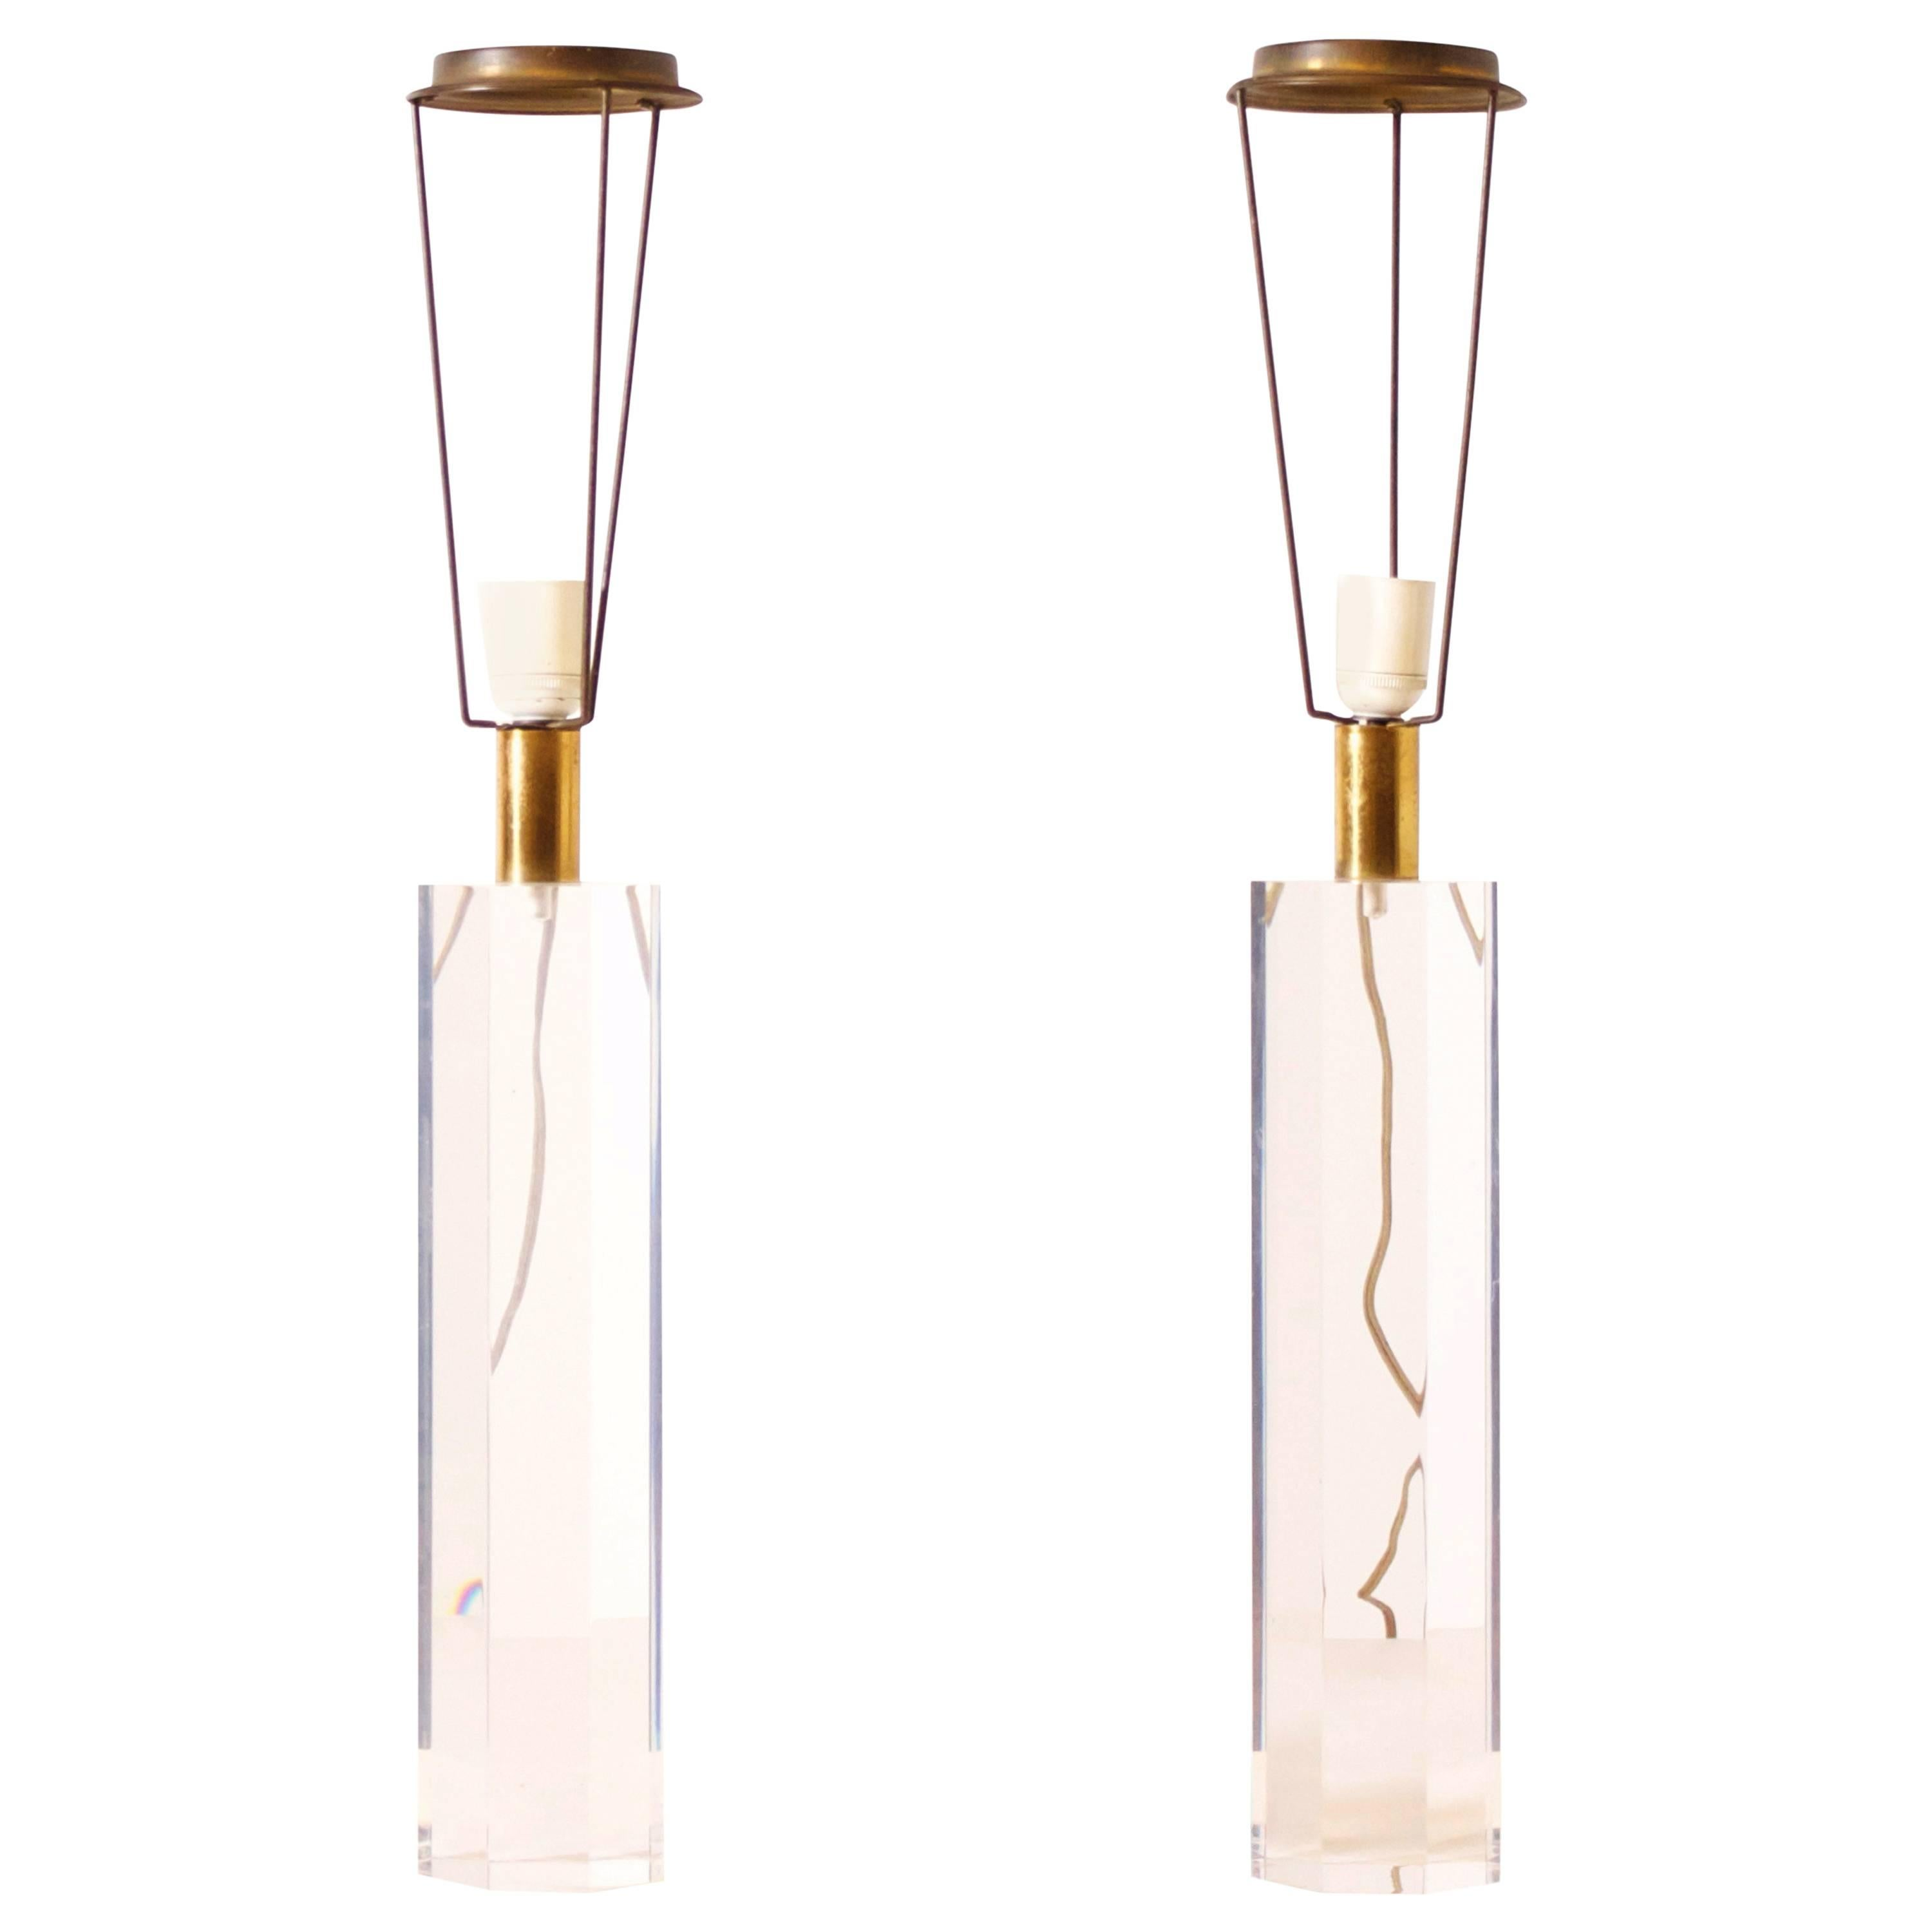 Set of French 1970s Lucite Table Lamps